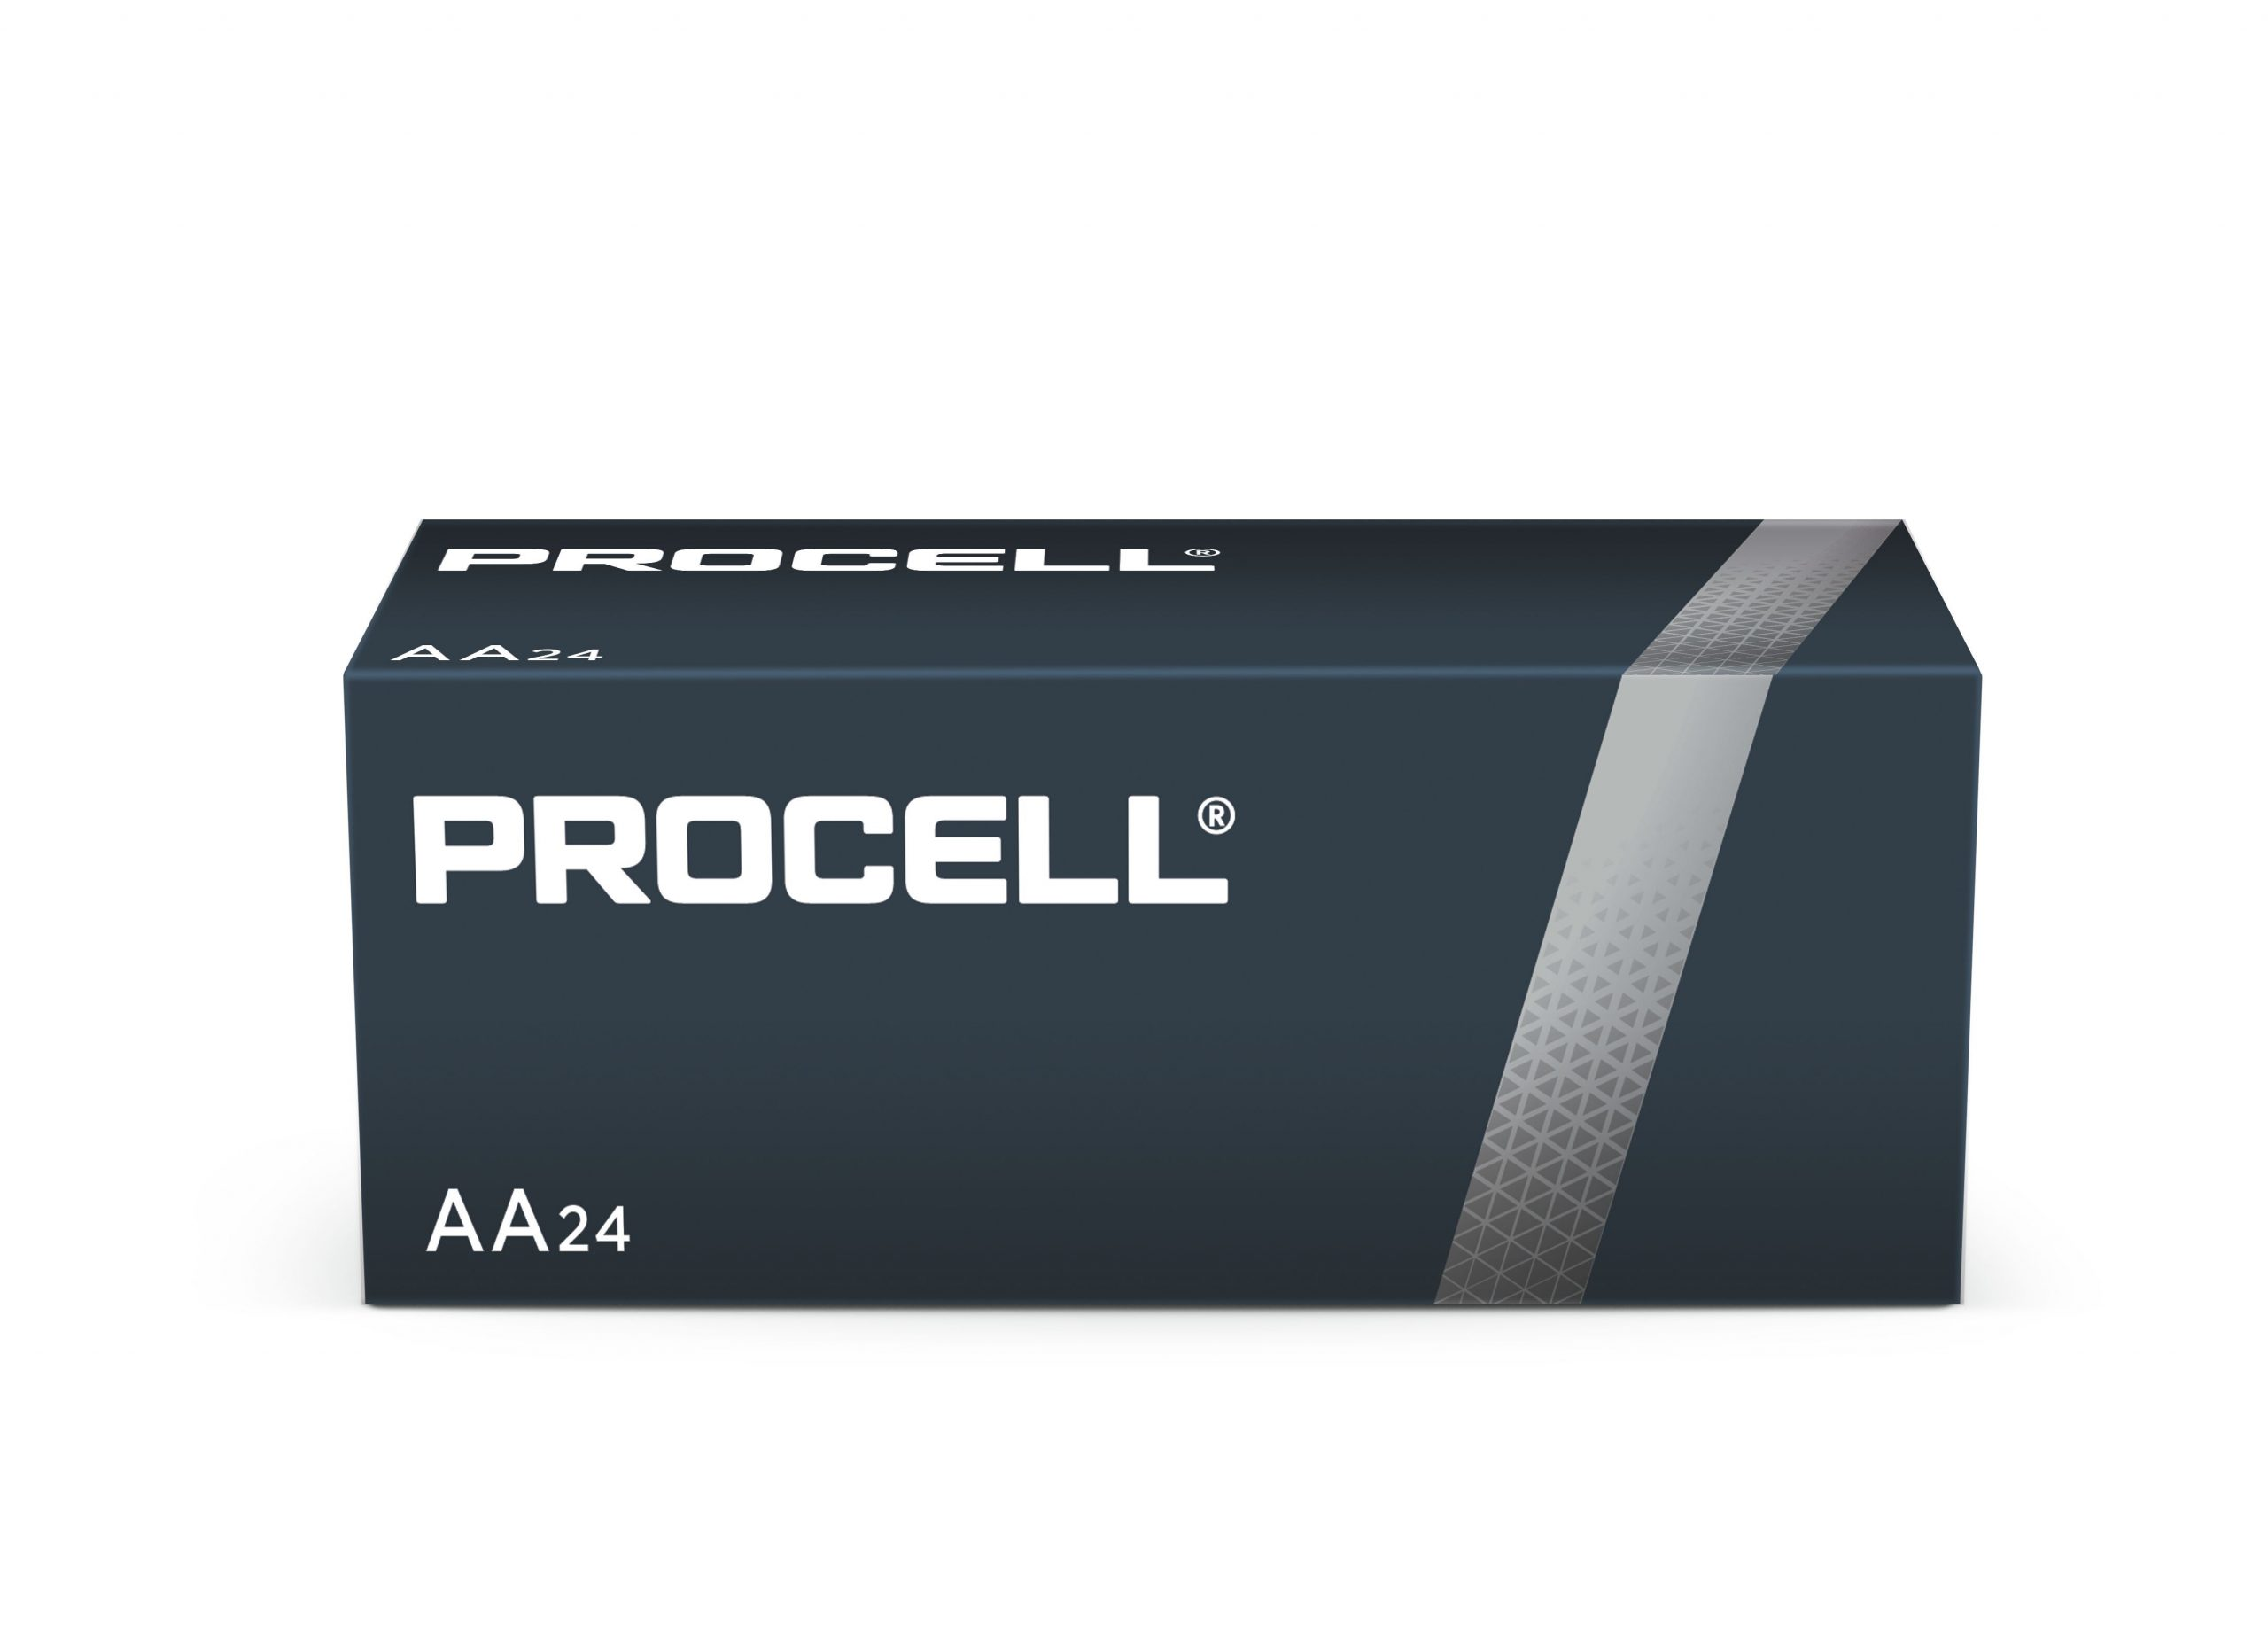 Procell_AA24_Box_Front